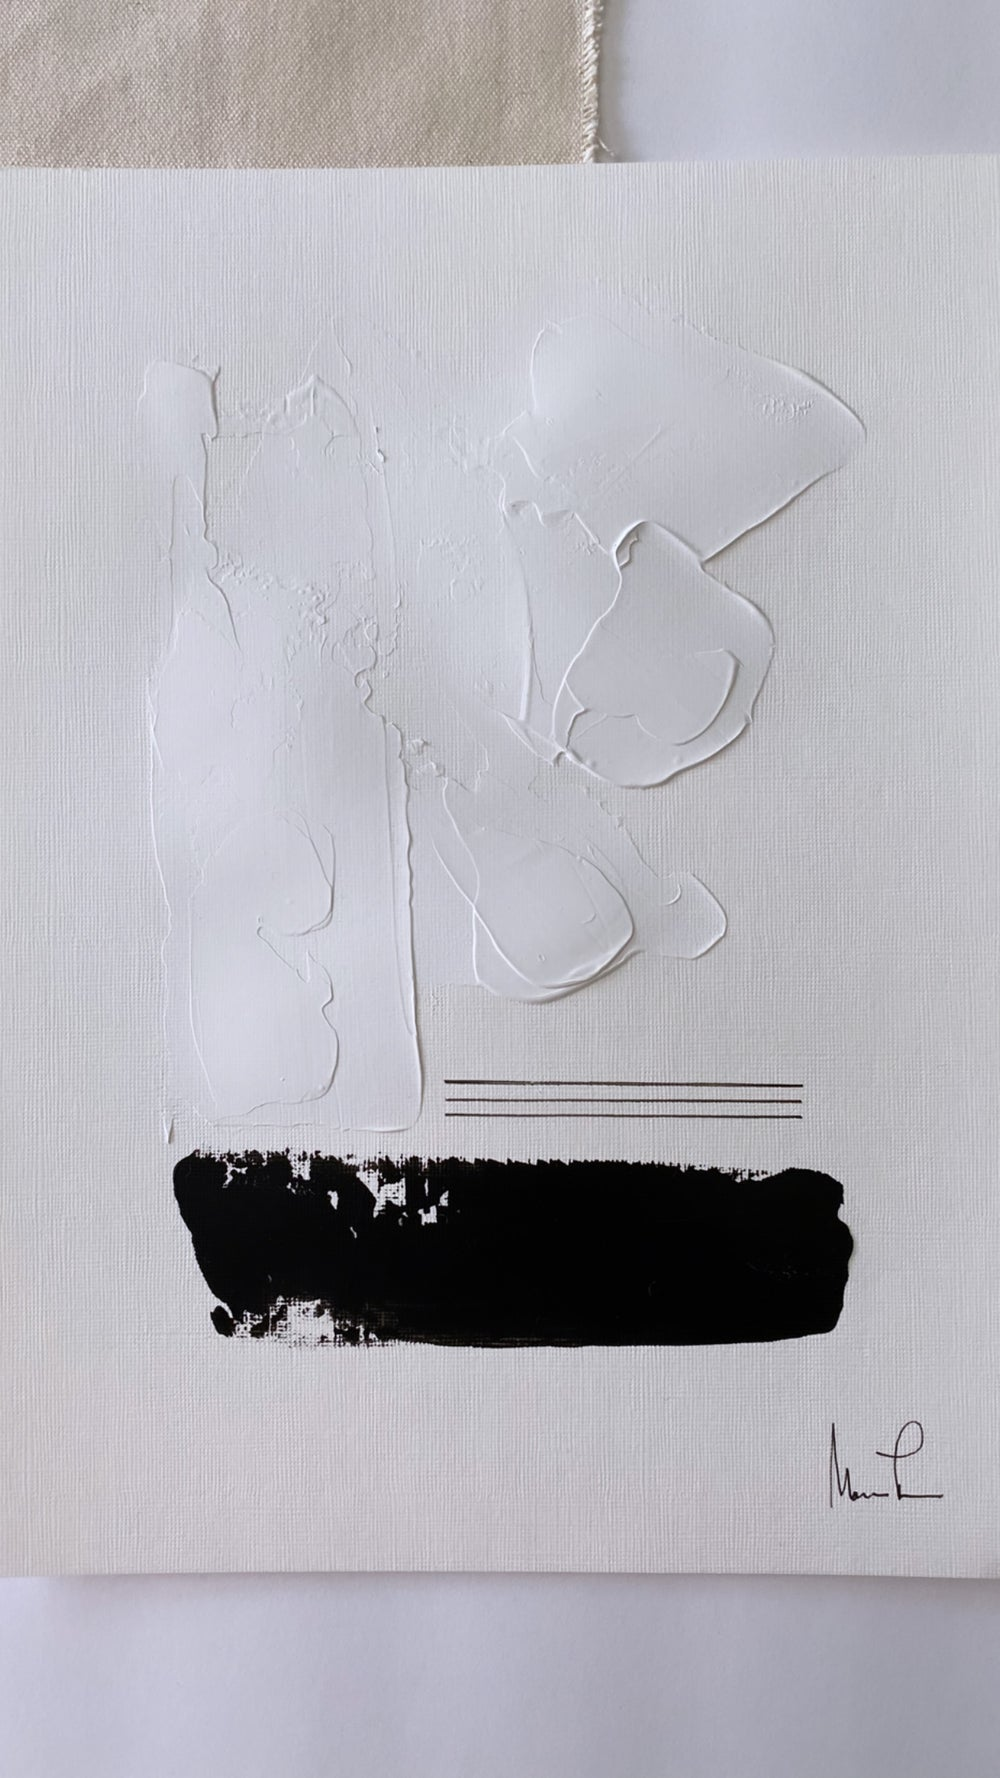 Image of Black & White Edition on Acrylic Paper (3)